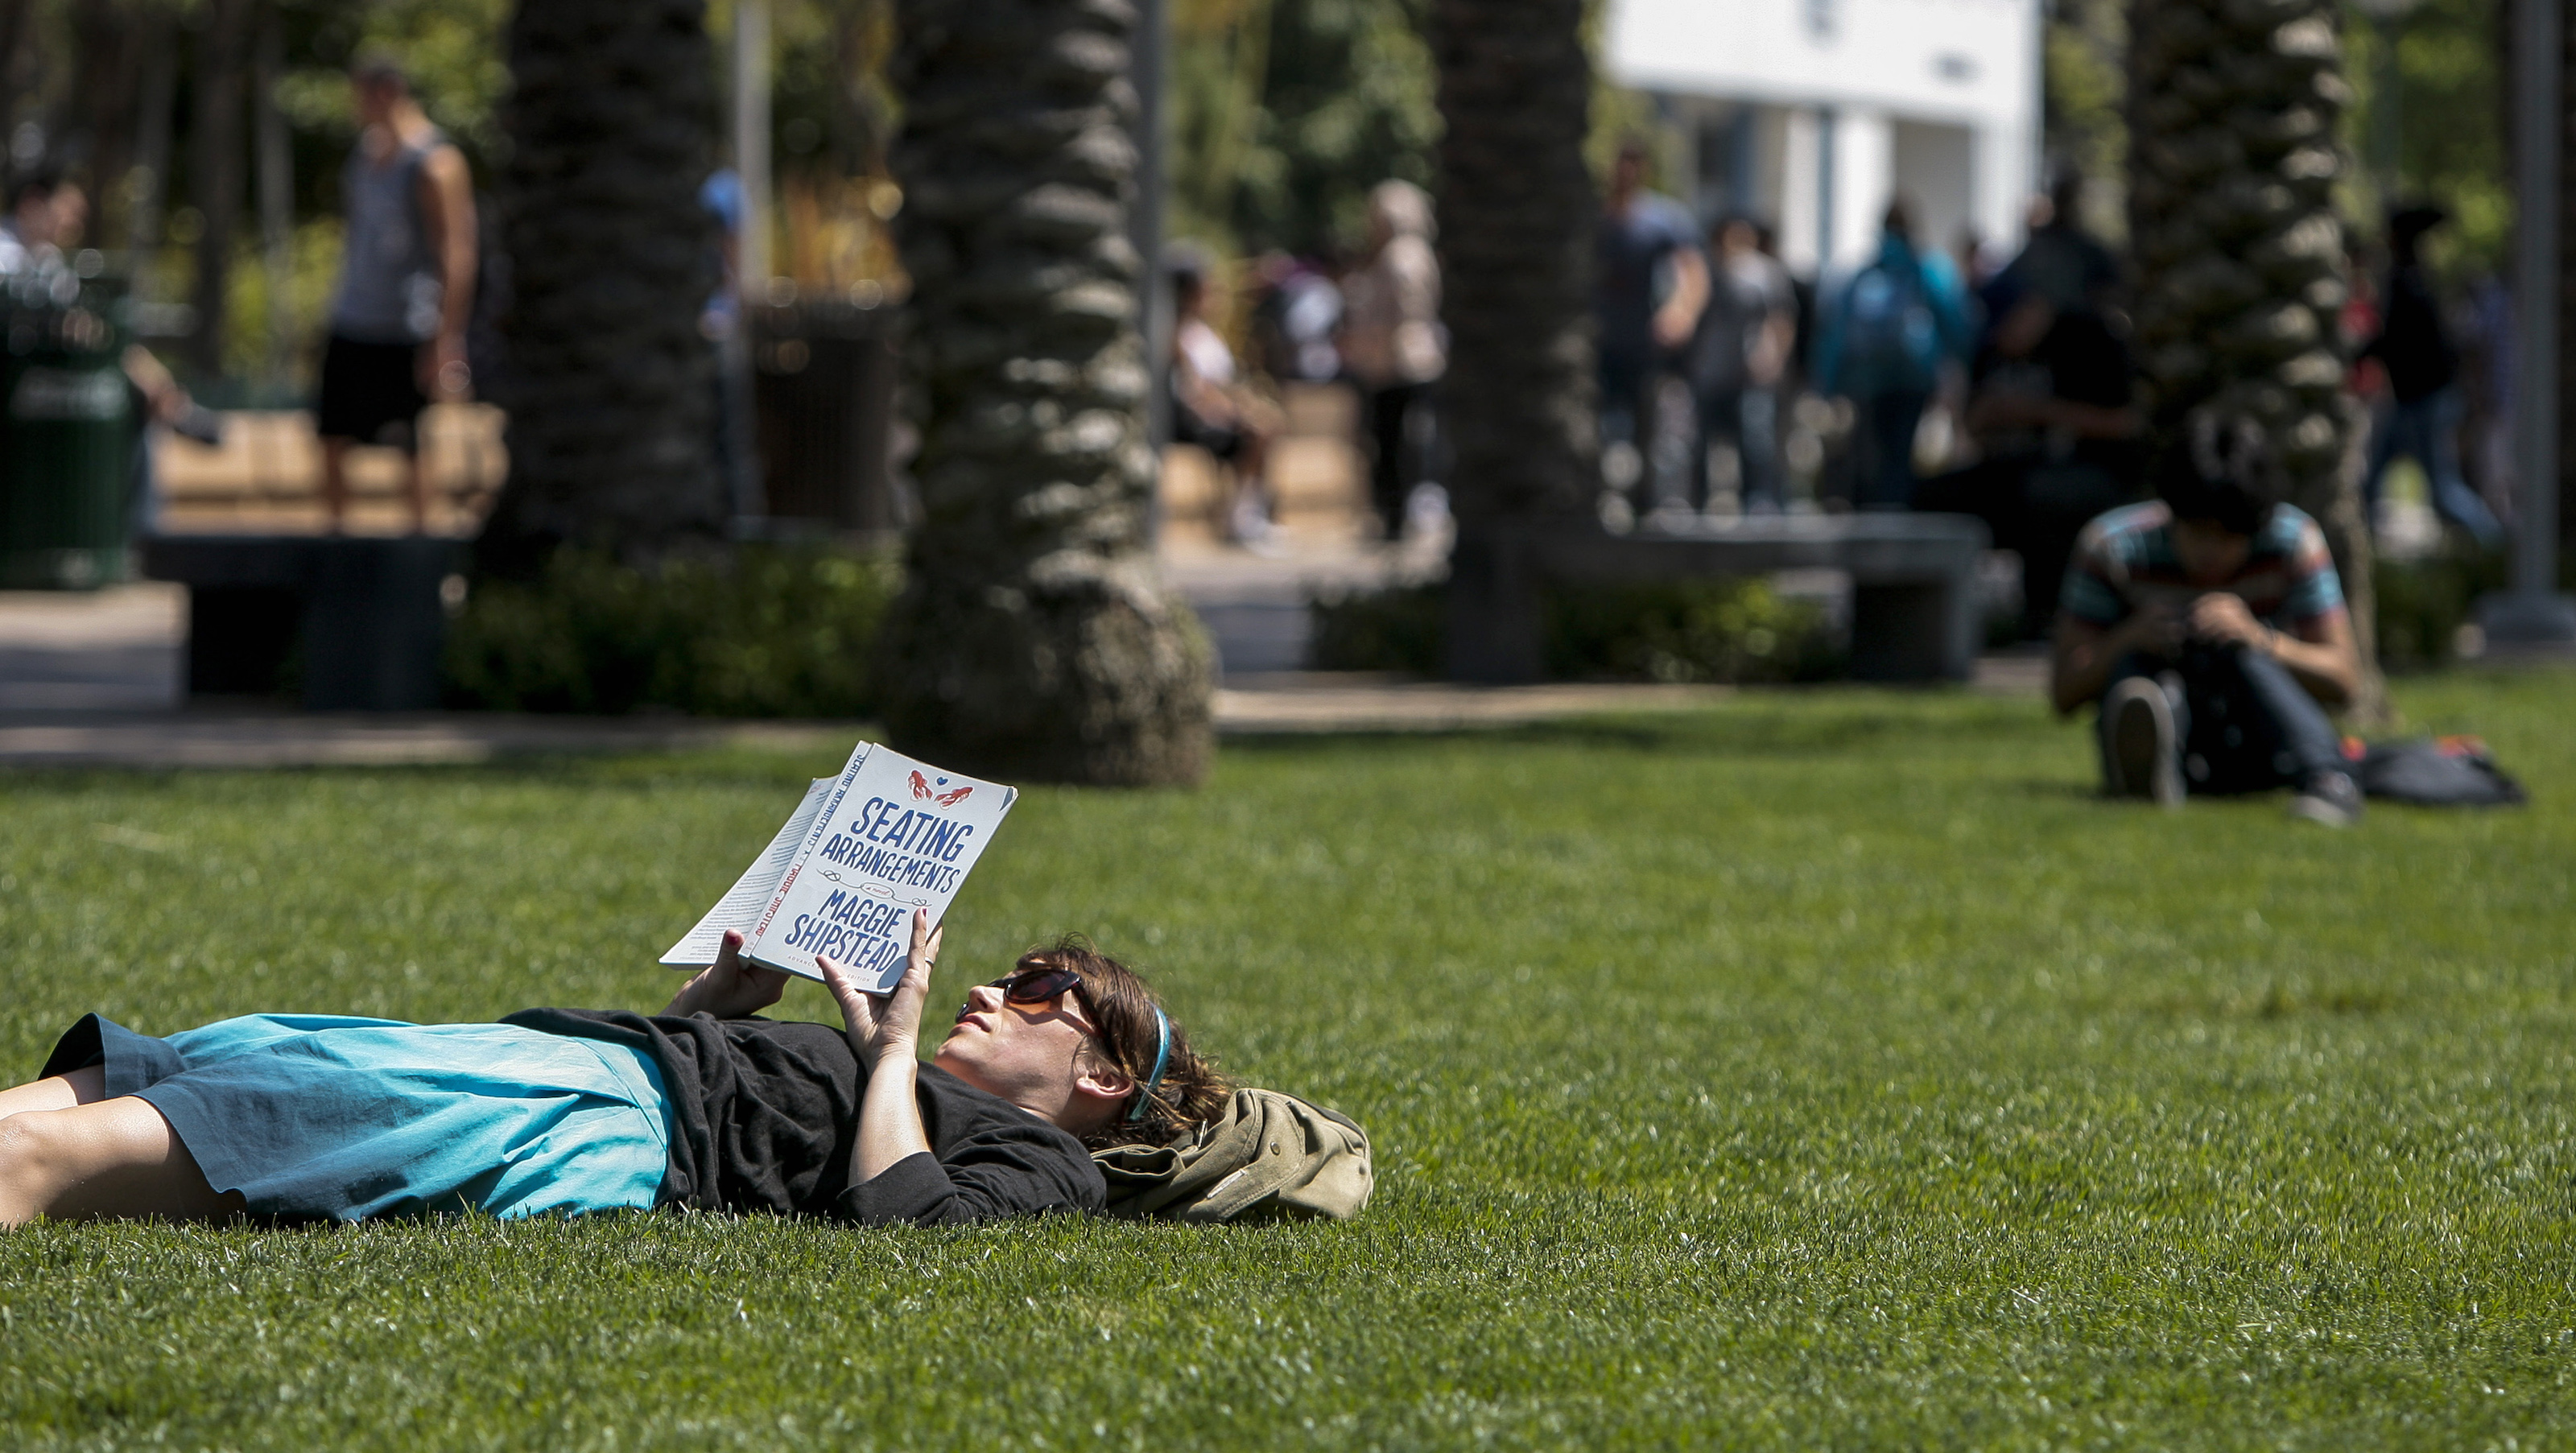 Santa Monica College English Department Assistant Ginger Pennington reads a book while lying on the lawn at Santa Monica College in Santa Monica, California April 4, 2012. The president of the California college defended on Wednesday the use of pepper spray by campus police against students protesting higher tuition for extra summer-school classes, an incident that left as many as 30 people overcome by the caustic substance. REUTERS/Bret Hartman  (UNITED STATES - Tags: EDUCATION CIVIL UNREST POLITICS) - RTR30CPM